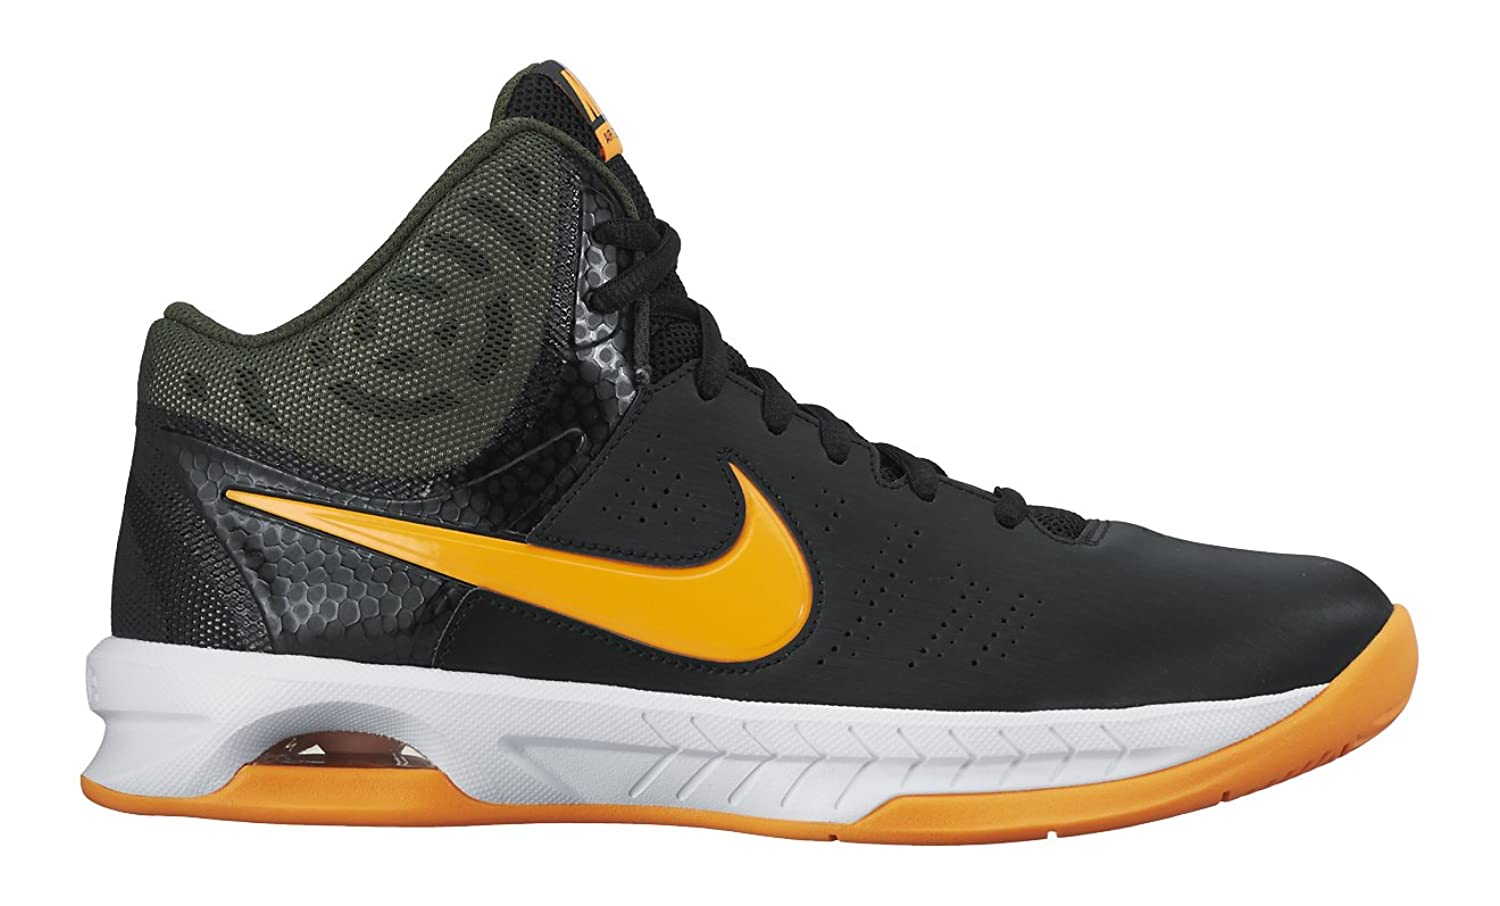 fbe2275d364 Nike Men s Air Visi Pro VI Black Orange Lace Up Basketball Shoes free  shipping